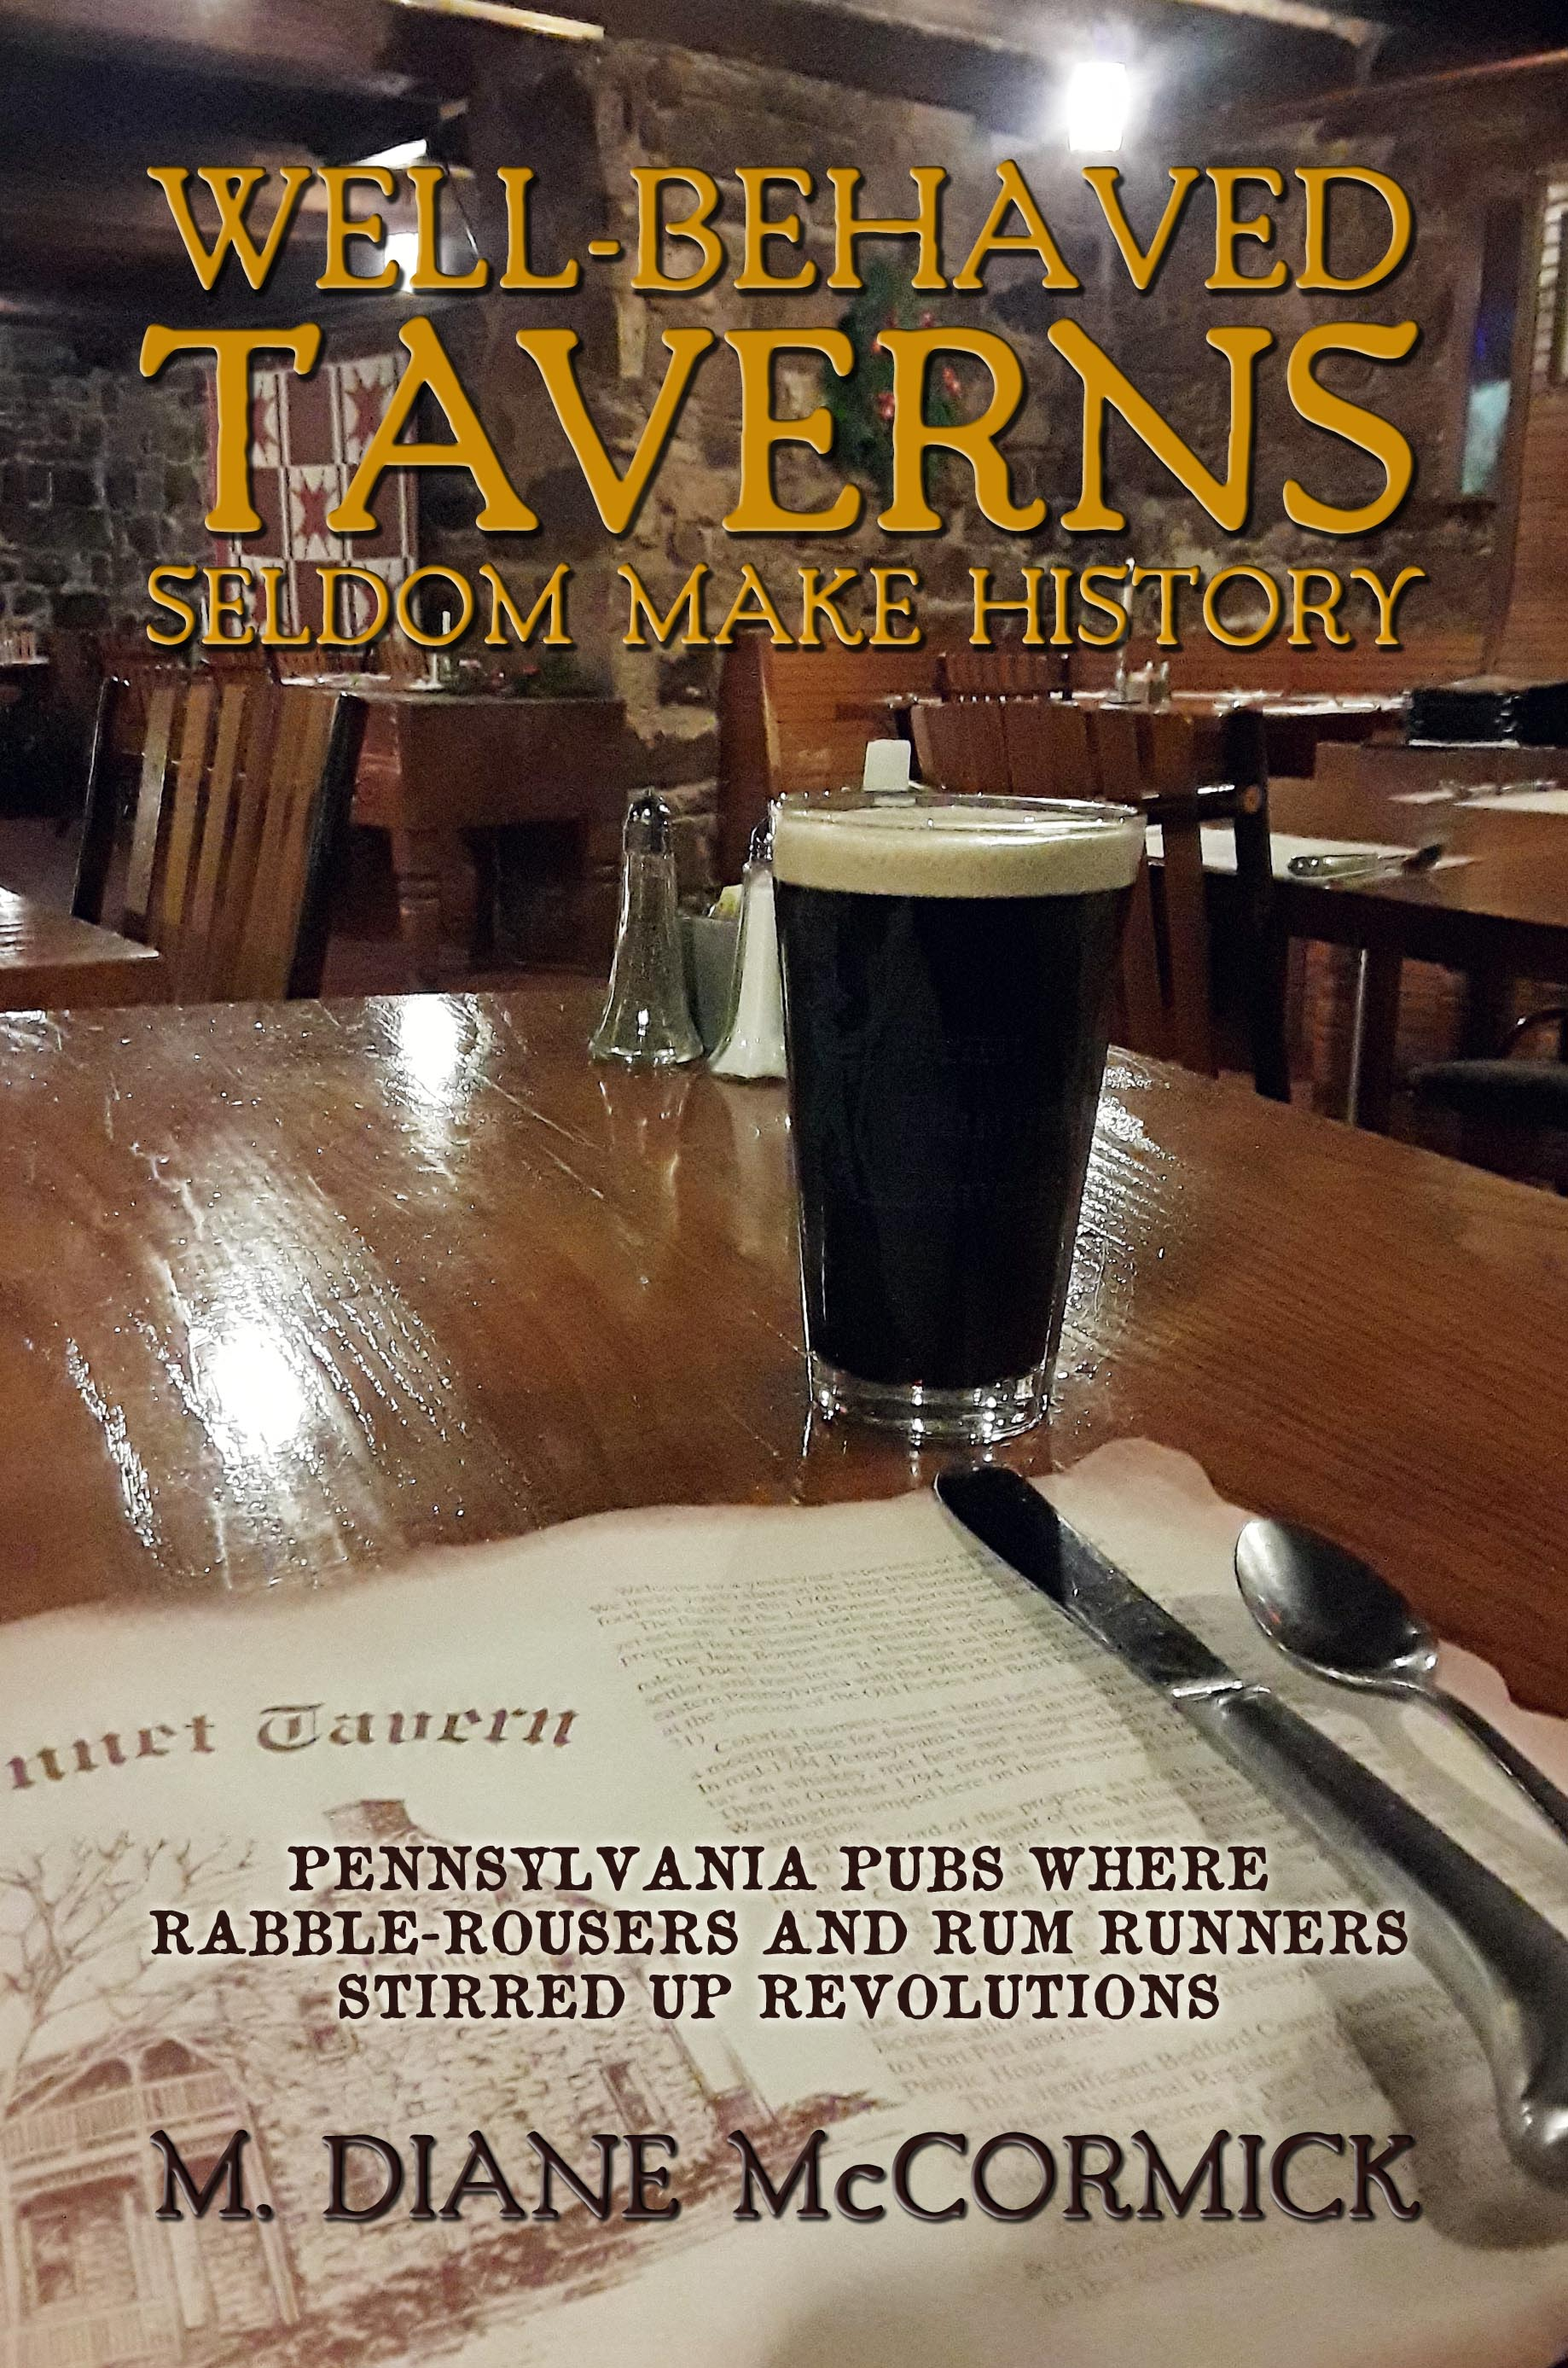 "Diane McCormick's ""Well-behaved Taverns Seldom Make History"" reigns as the Sunbury Press bestseller for November"